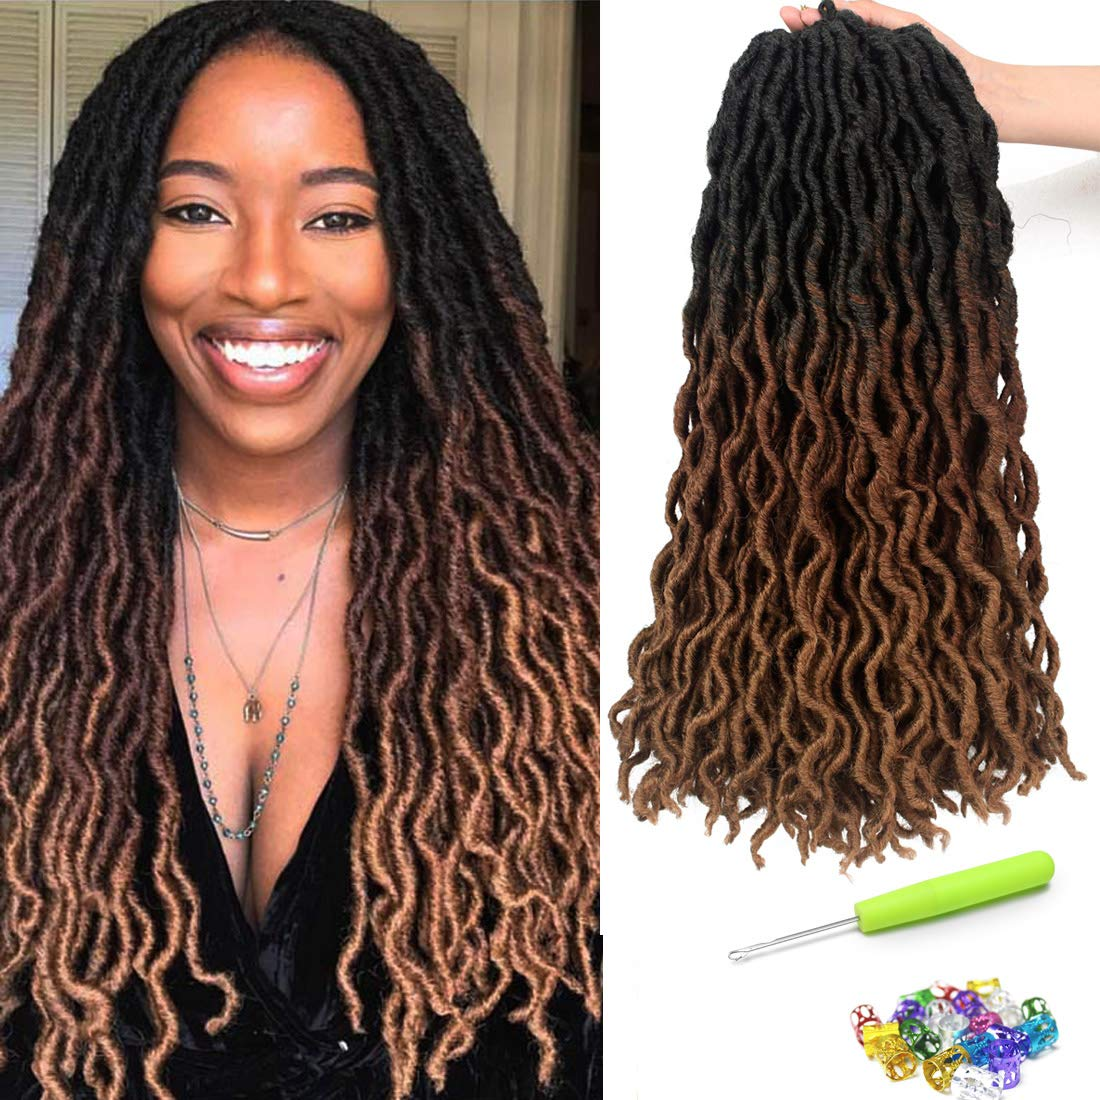 18 Inch Goddess Faux locs Crochet Hair 6 Packs/Lot Soft Gypsy Loc Wavy Crochet Braids Dreadlocks 3 Tone Ombre Curly Wavy Twist Braiding Hair Extensions 24 Strands/Pack African Roots Braid(#1B/30/27) by Liyate